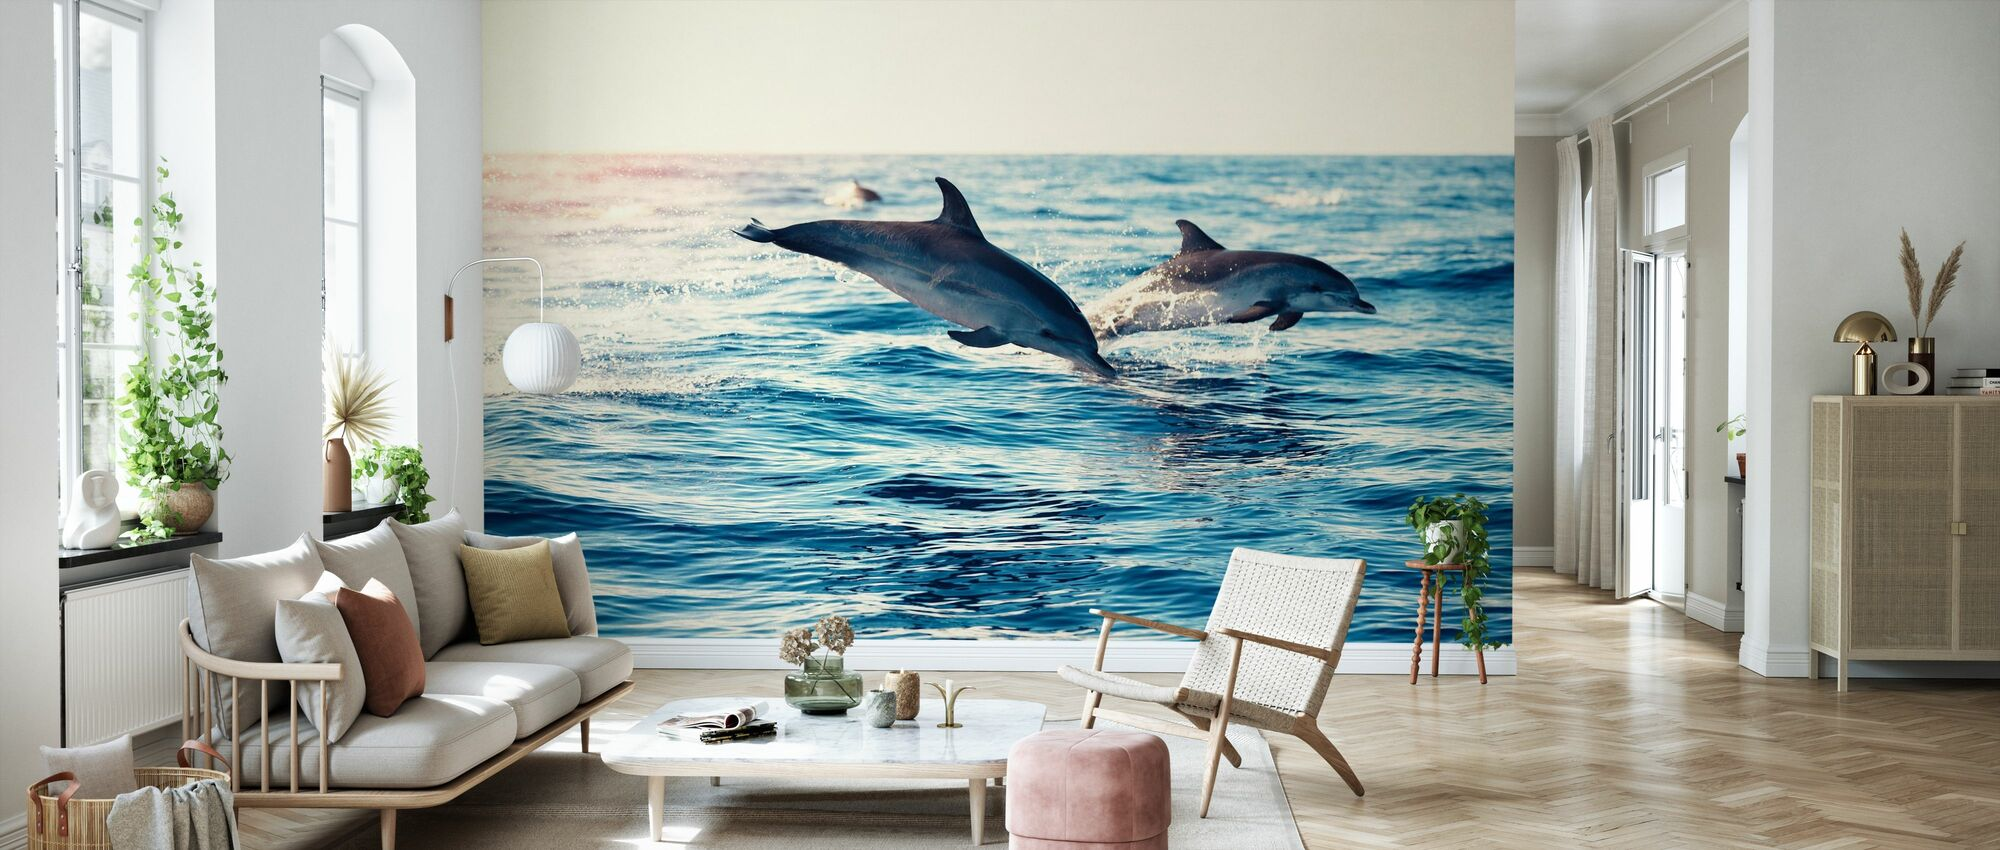 Dolphins Jumping from the Sea - Wallpaper - Living Room